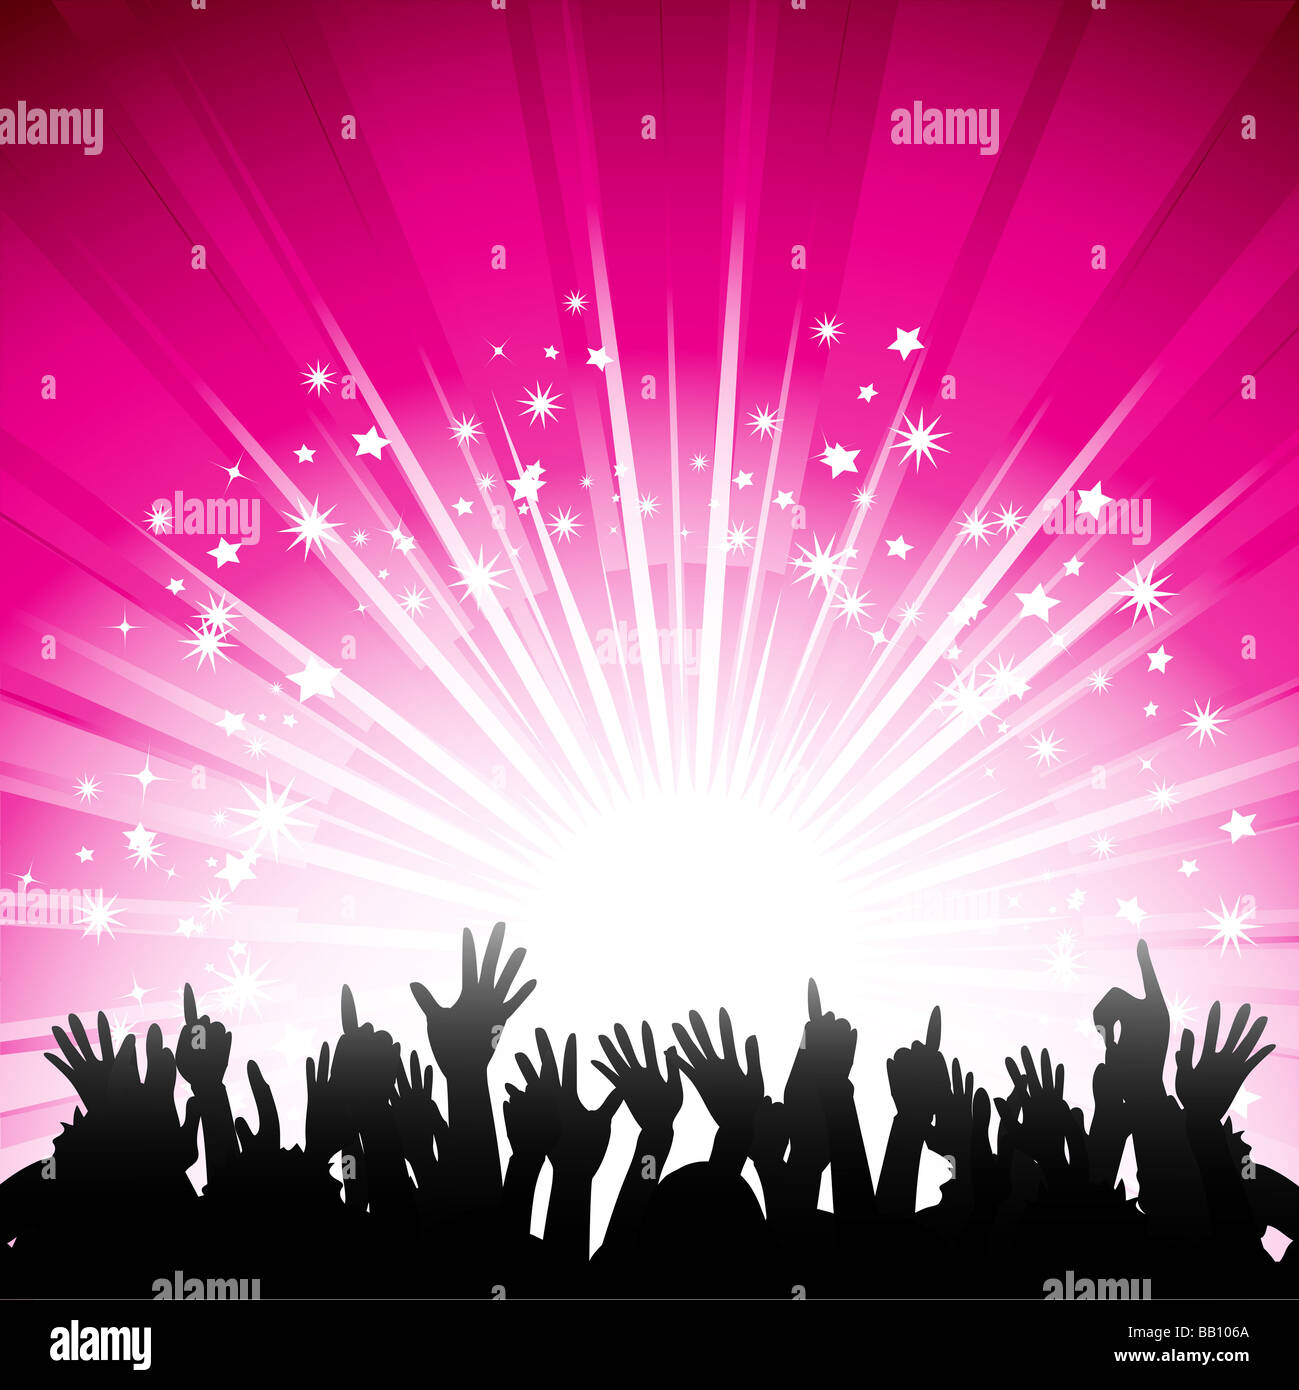 Pics photos rock concert background - Stock Photo Silhouette Crowd Partying In Front Of A Glowing Pink Background With Stars